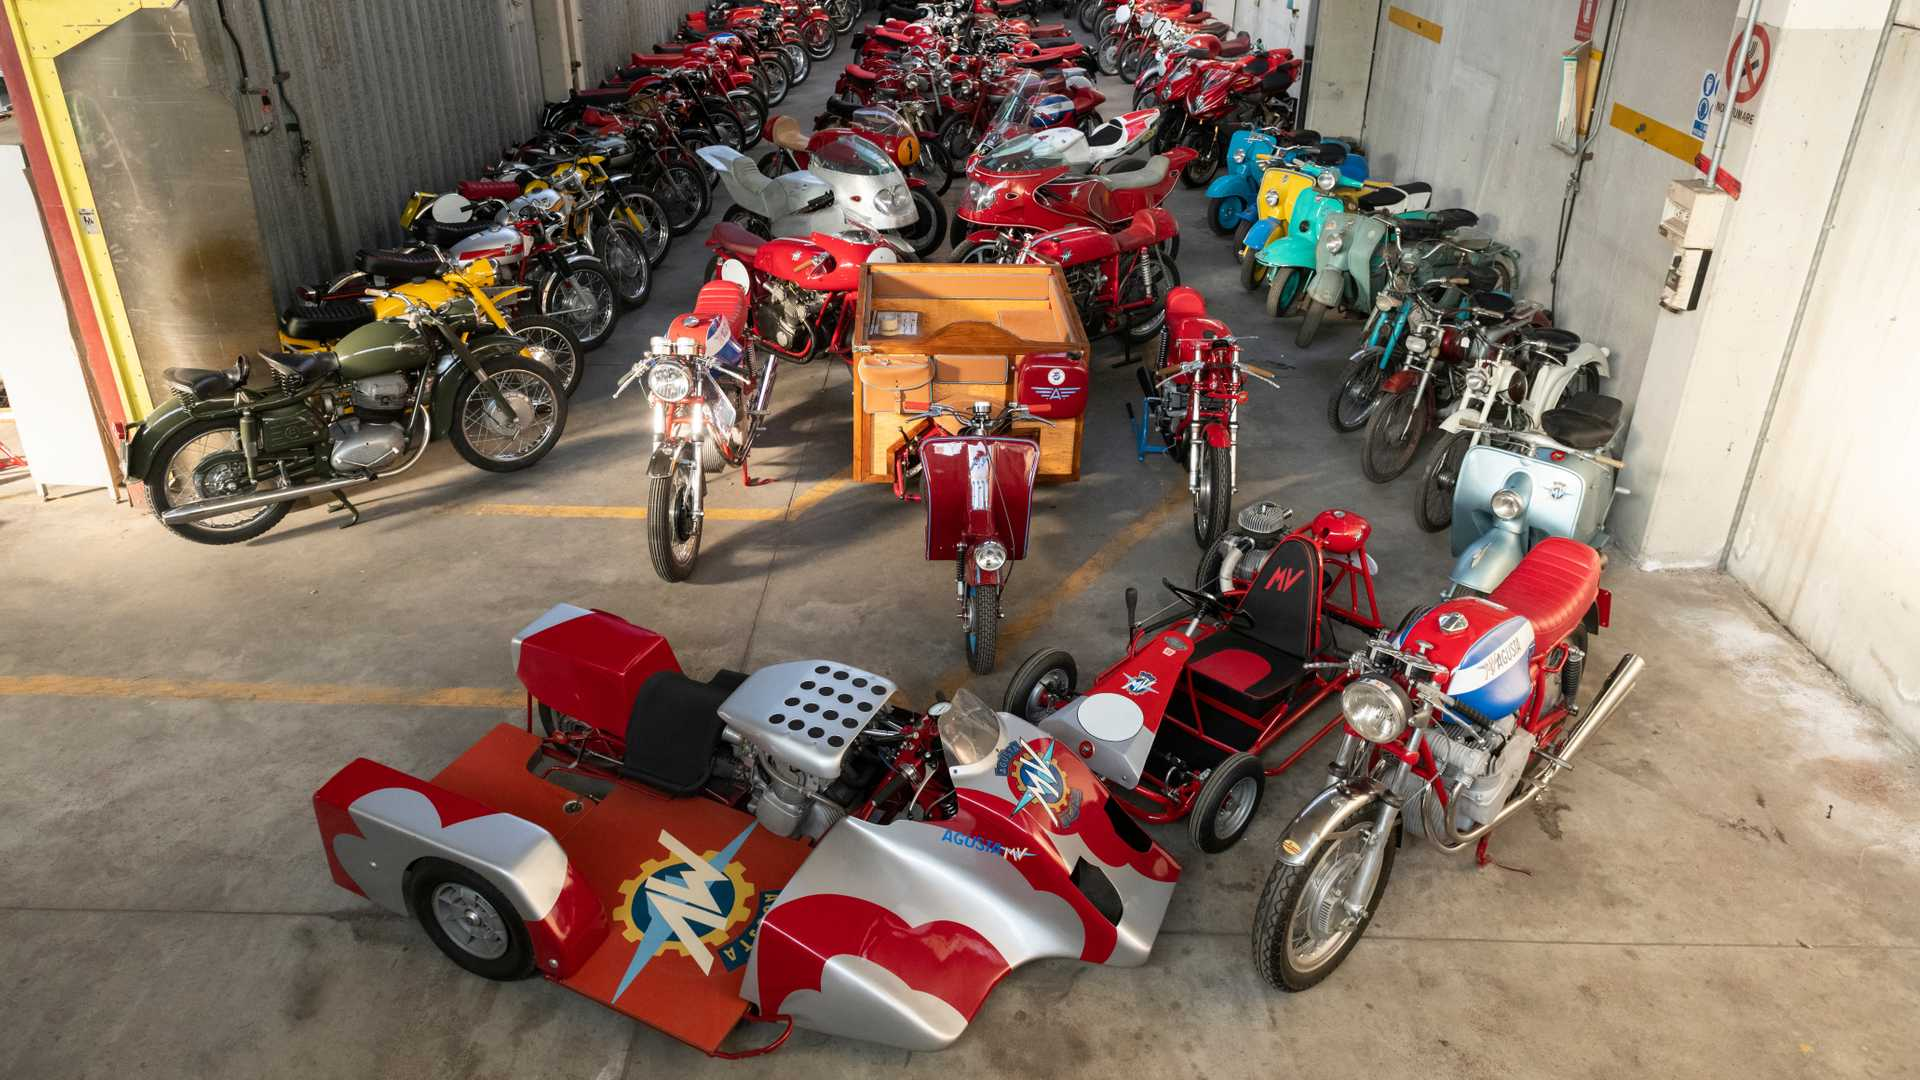 The biggest MV Agusta collection is up for sale!